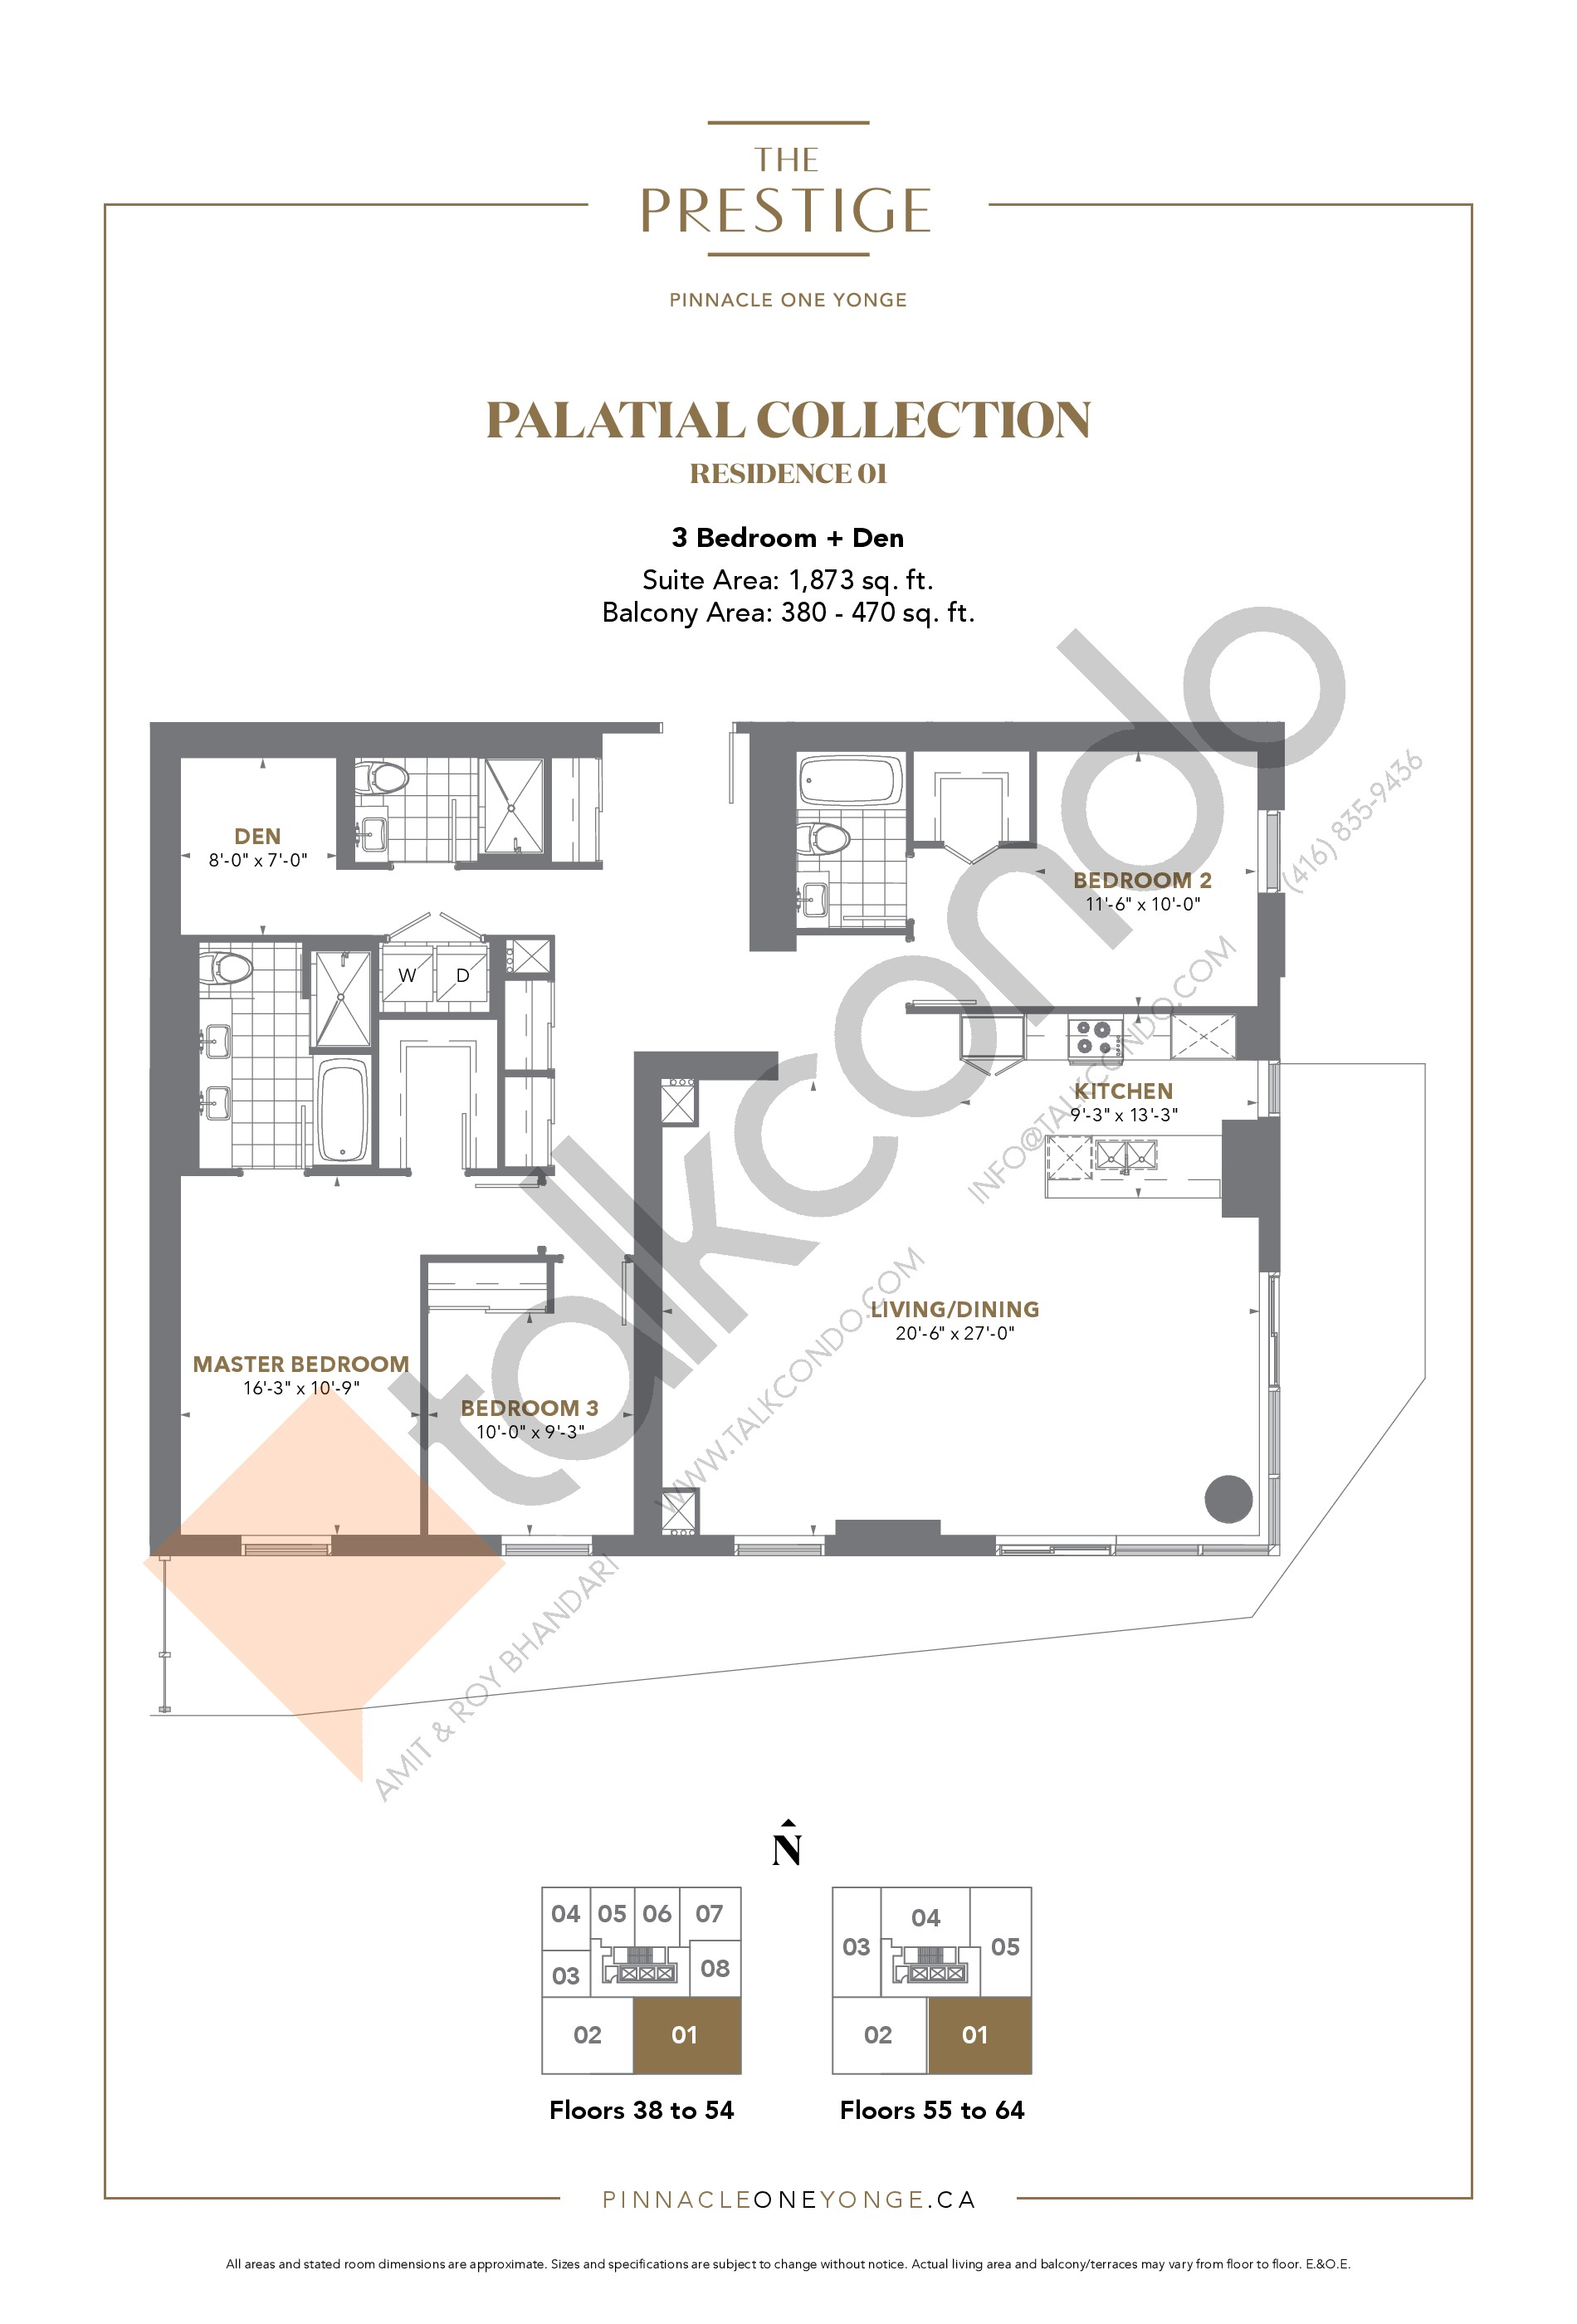 Palatial Collection - Residence 01 Floor Plan at The Prestige Condos at Pinnacle One Yonge - 1873 sq.ft